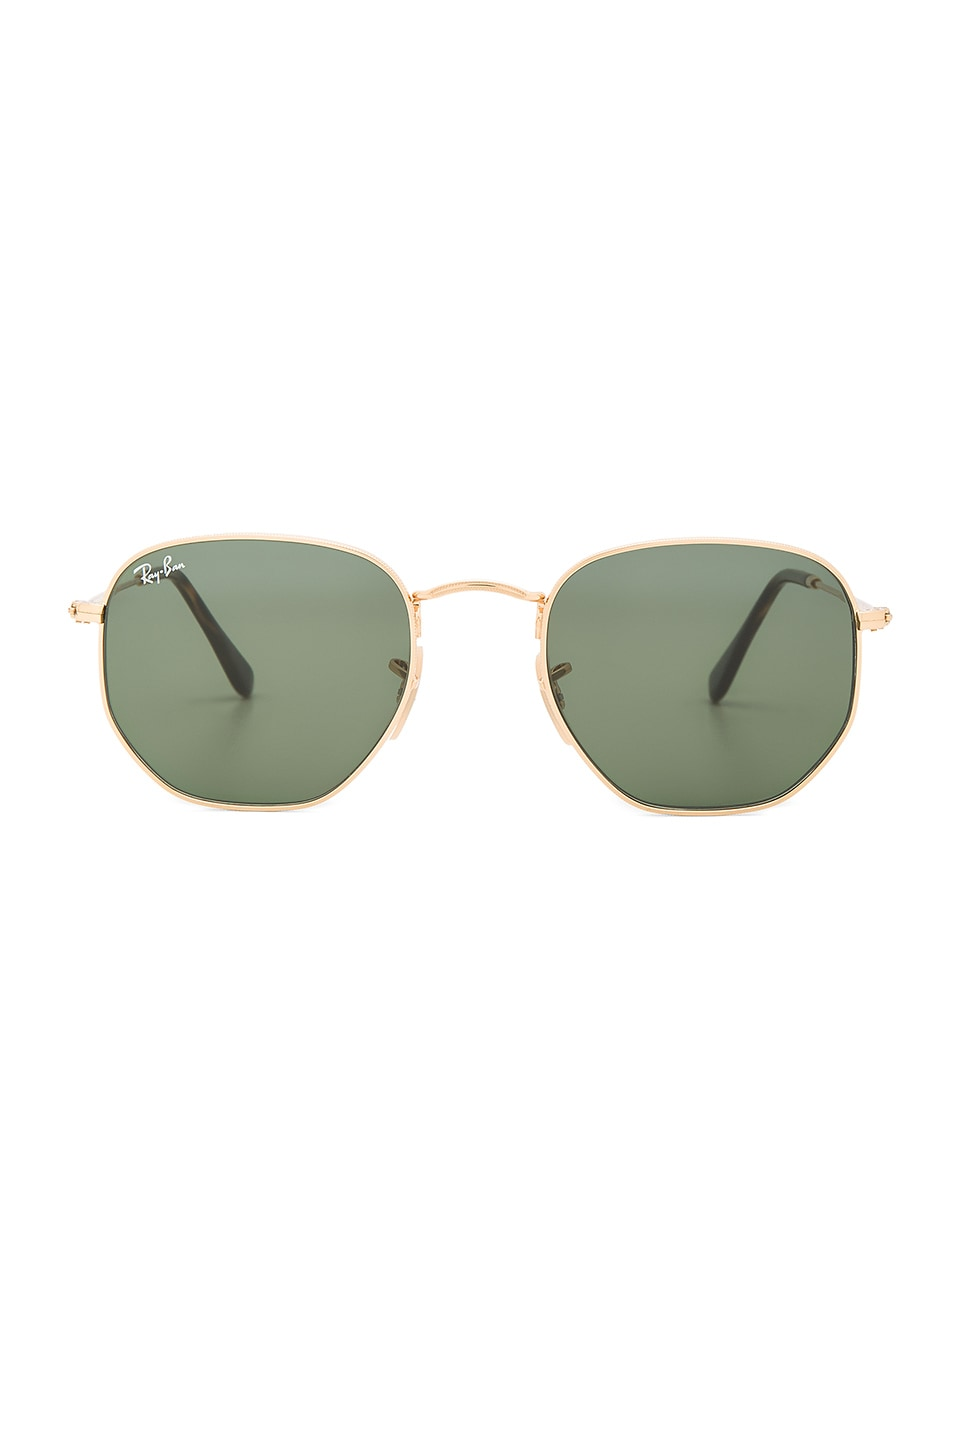 a7384ed3e59 Ray-Ban Hexagonal Flat in Gold   Green Classic